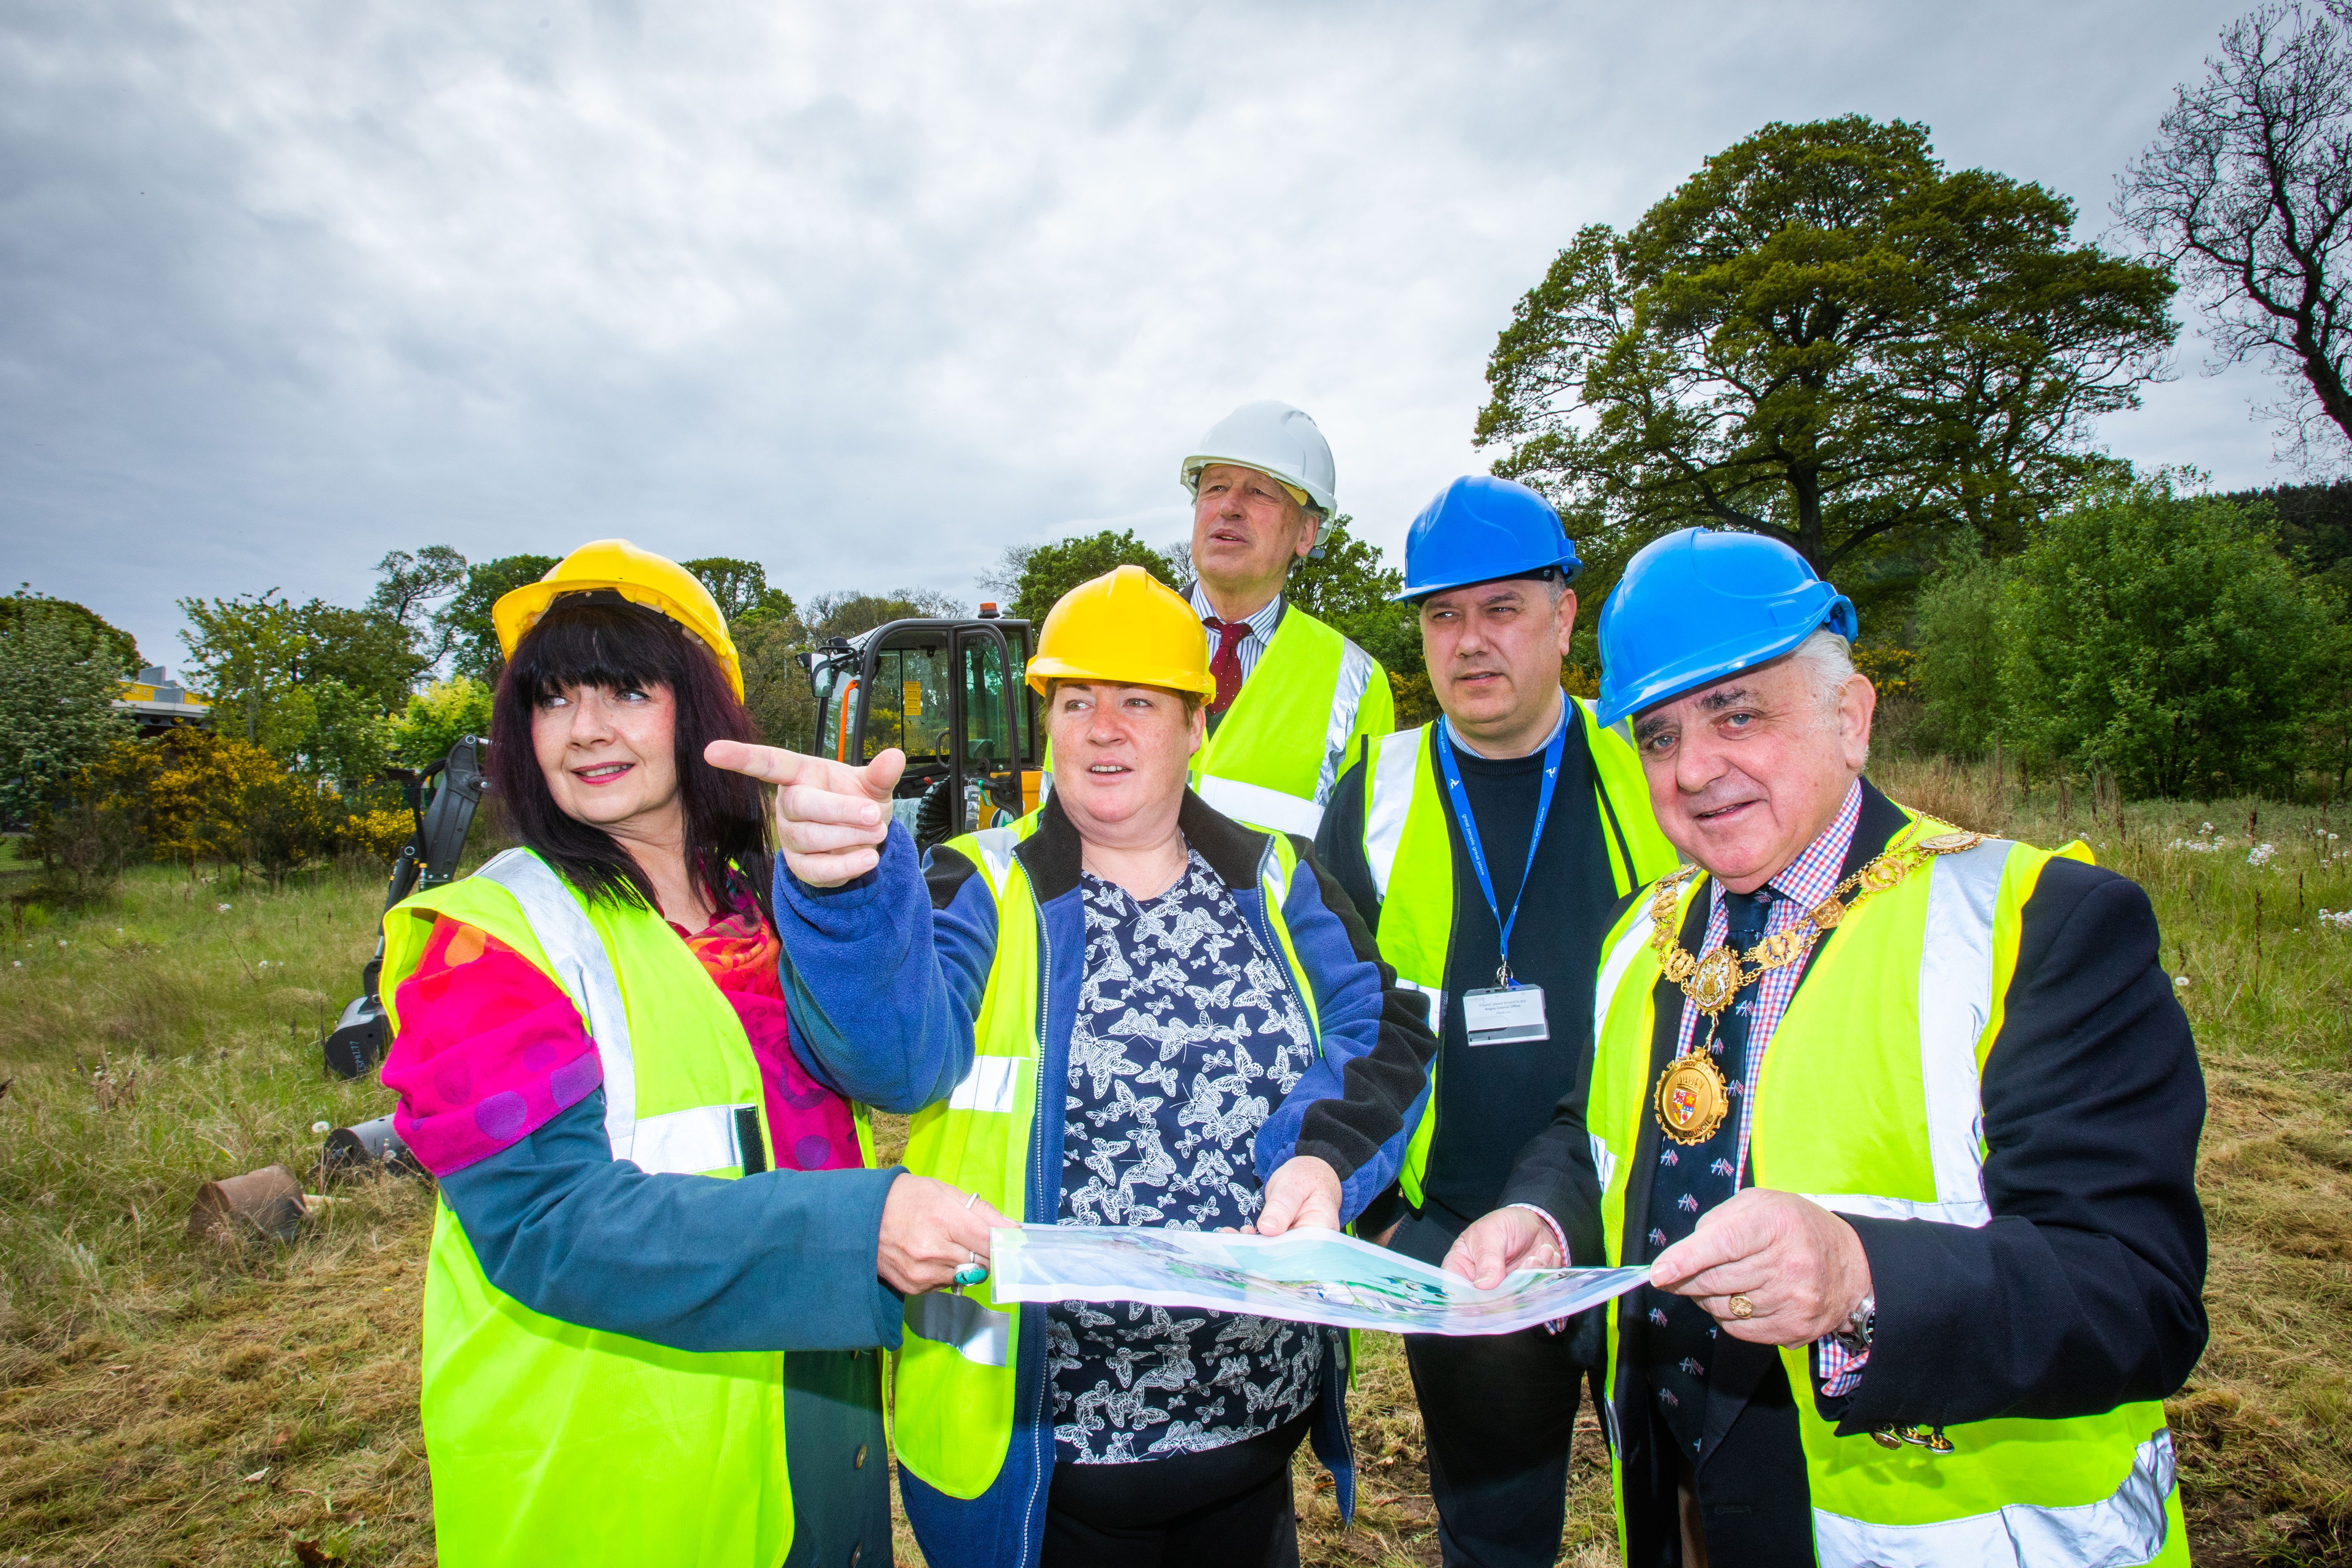 Councillor Julie Bell, Kathleen Band (Secretary of Newtyle and Eassie Community Council), Councillor Angus Macmillan Douglas (Deputy Council Leader), Councillor Tommy Stewart and Provost Ronnie Proctor.